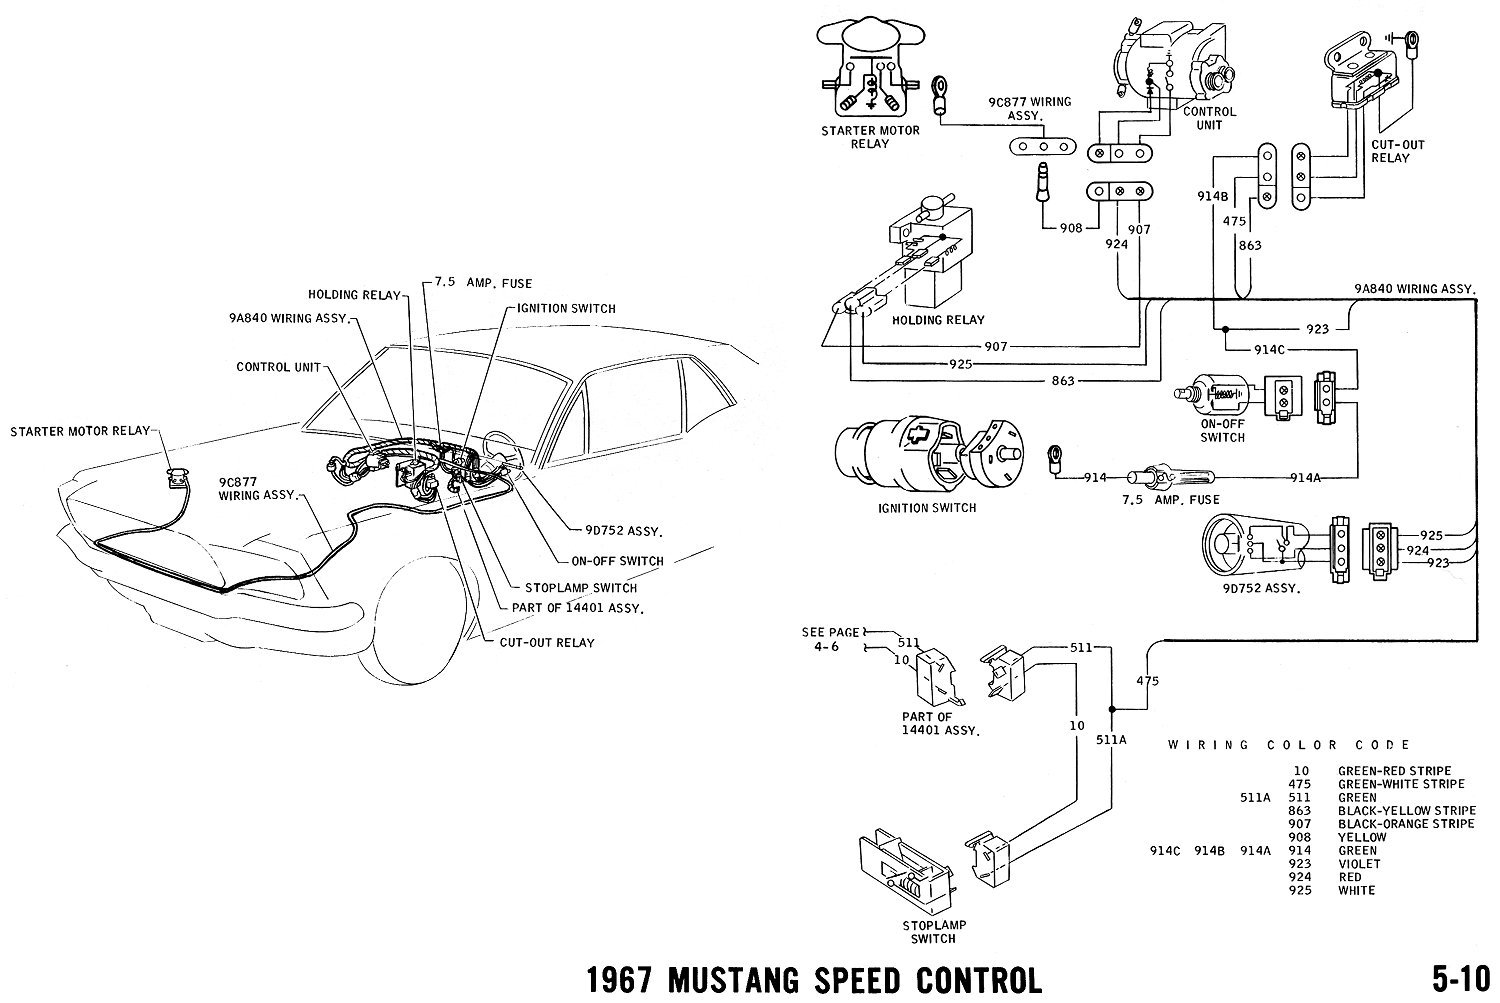 67speed 1967 mustang wiring diagram 67 mustang solenoid wiring diagram 67 mustang wiring harness at crackthecode.co